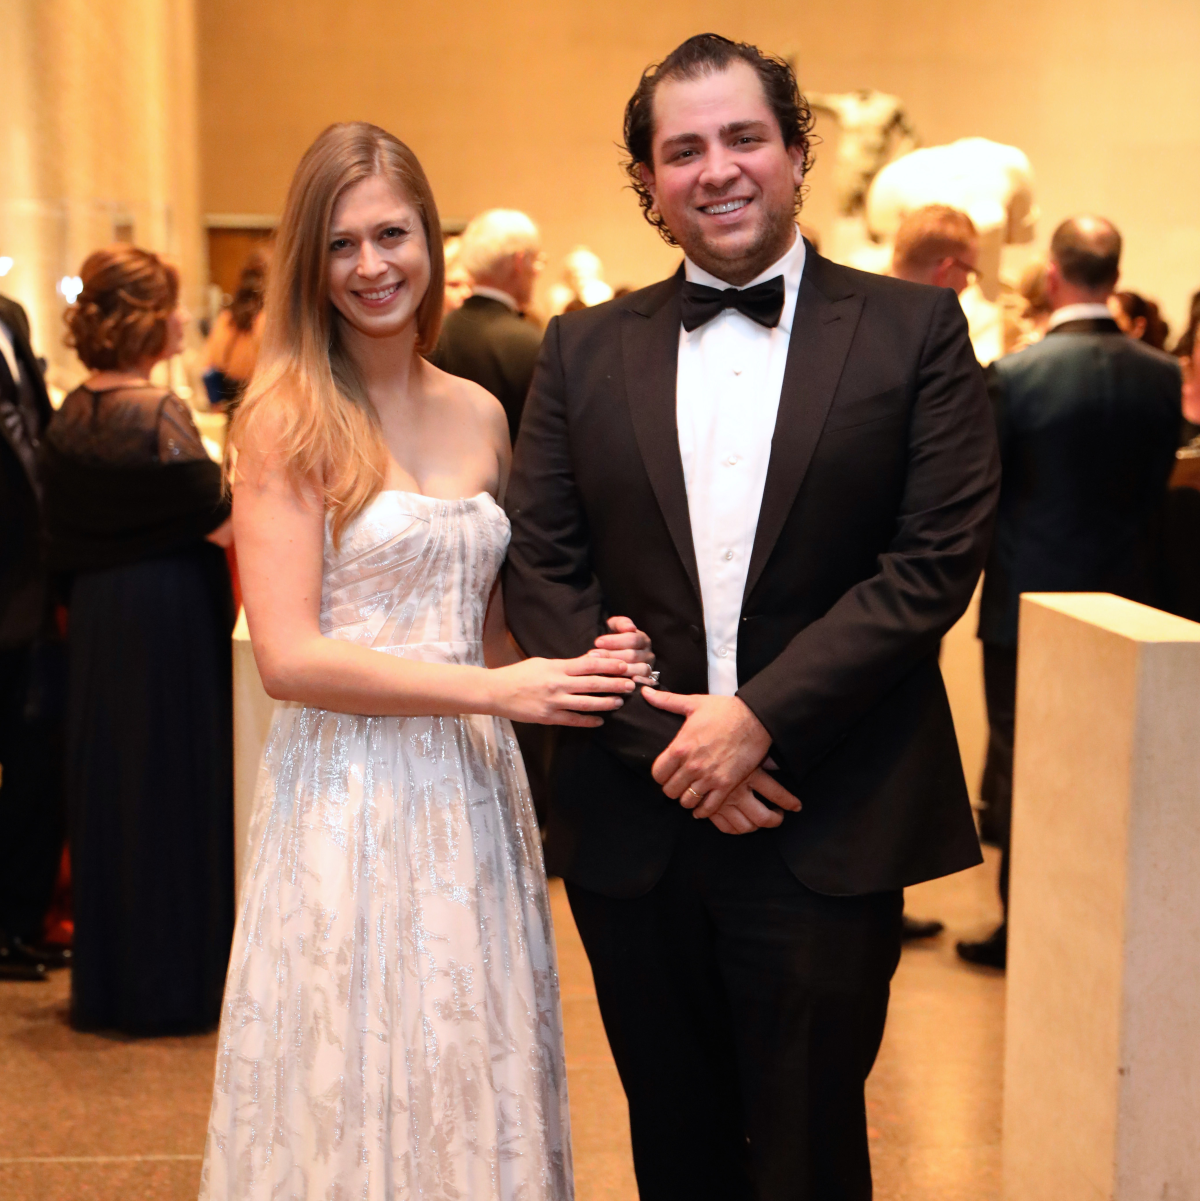 Houston, MFAH Art of the Islamic Worlds Gala, November 2017, Tatiana Galitzine, Guillermo Sierra